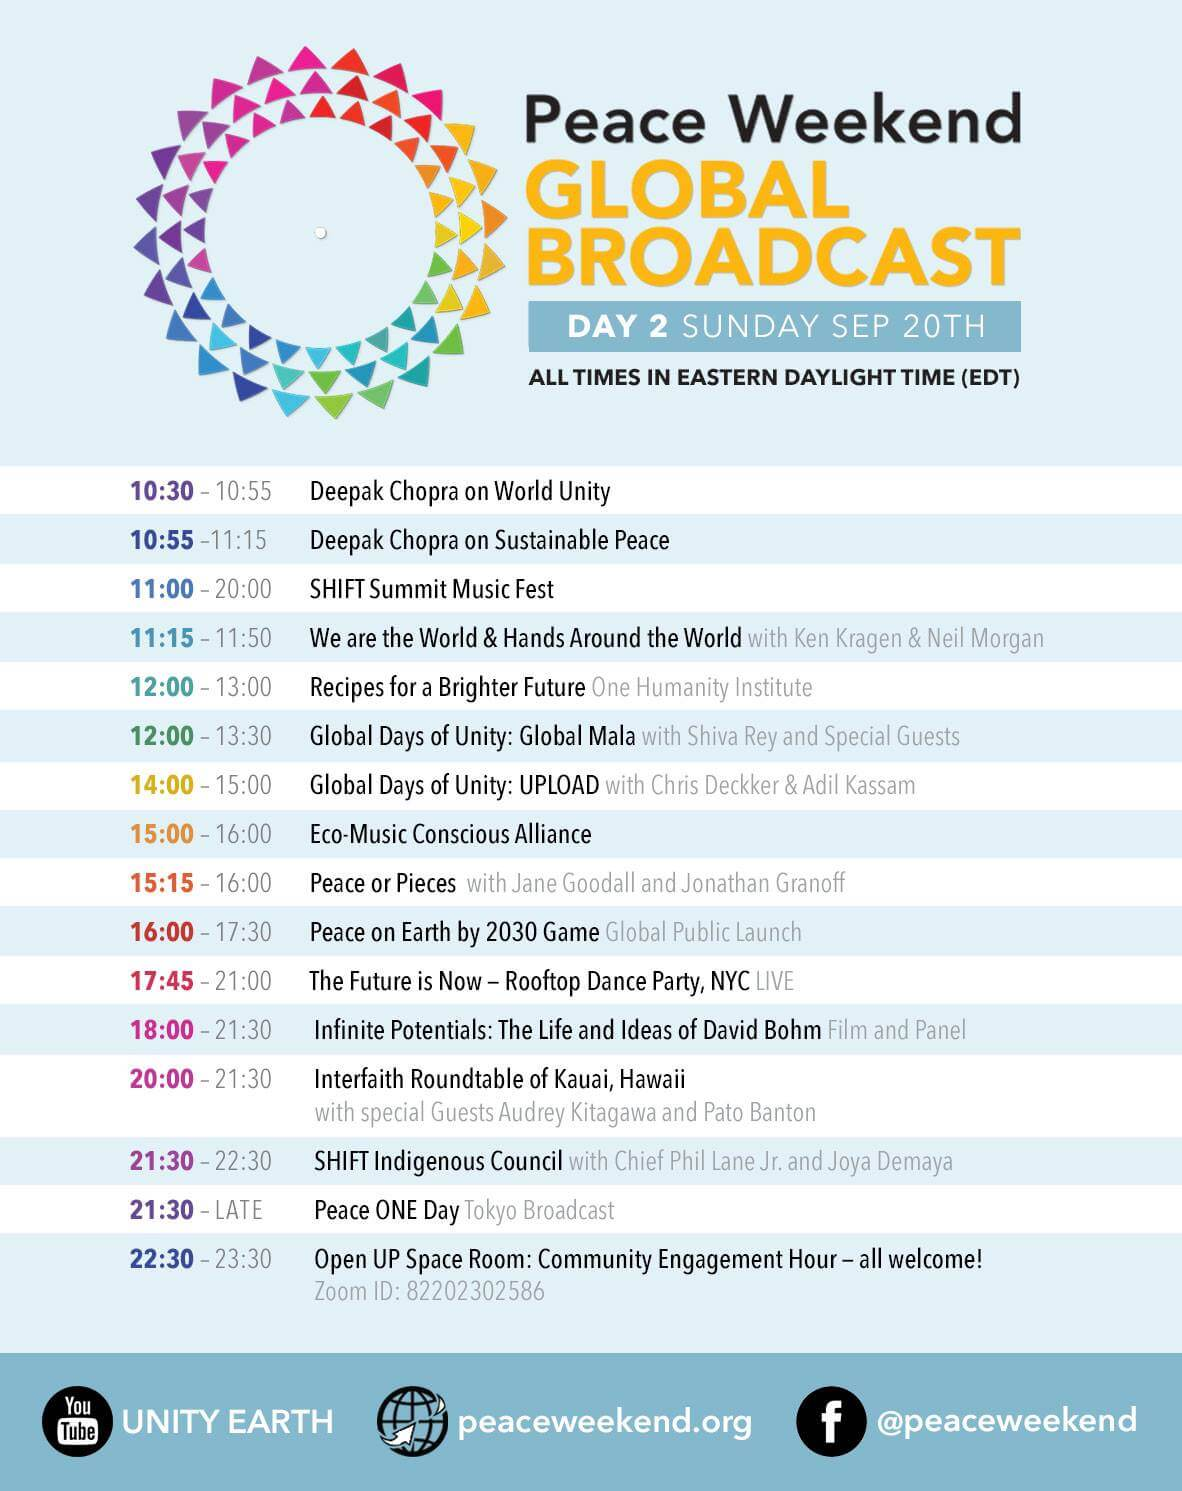 PW Global Broadcast Schedule- Sunday